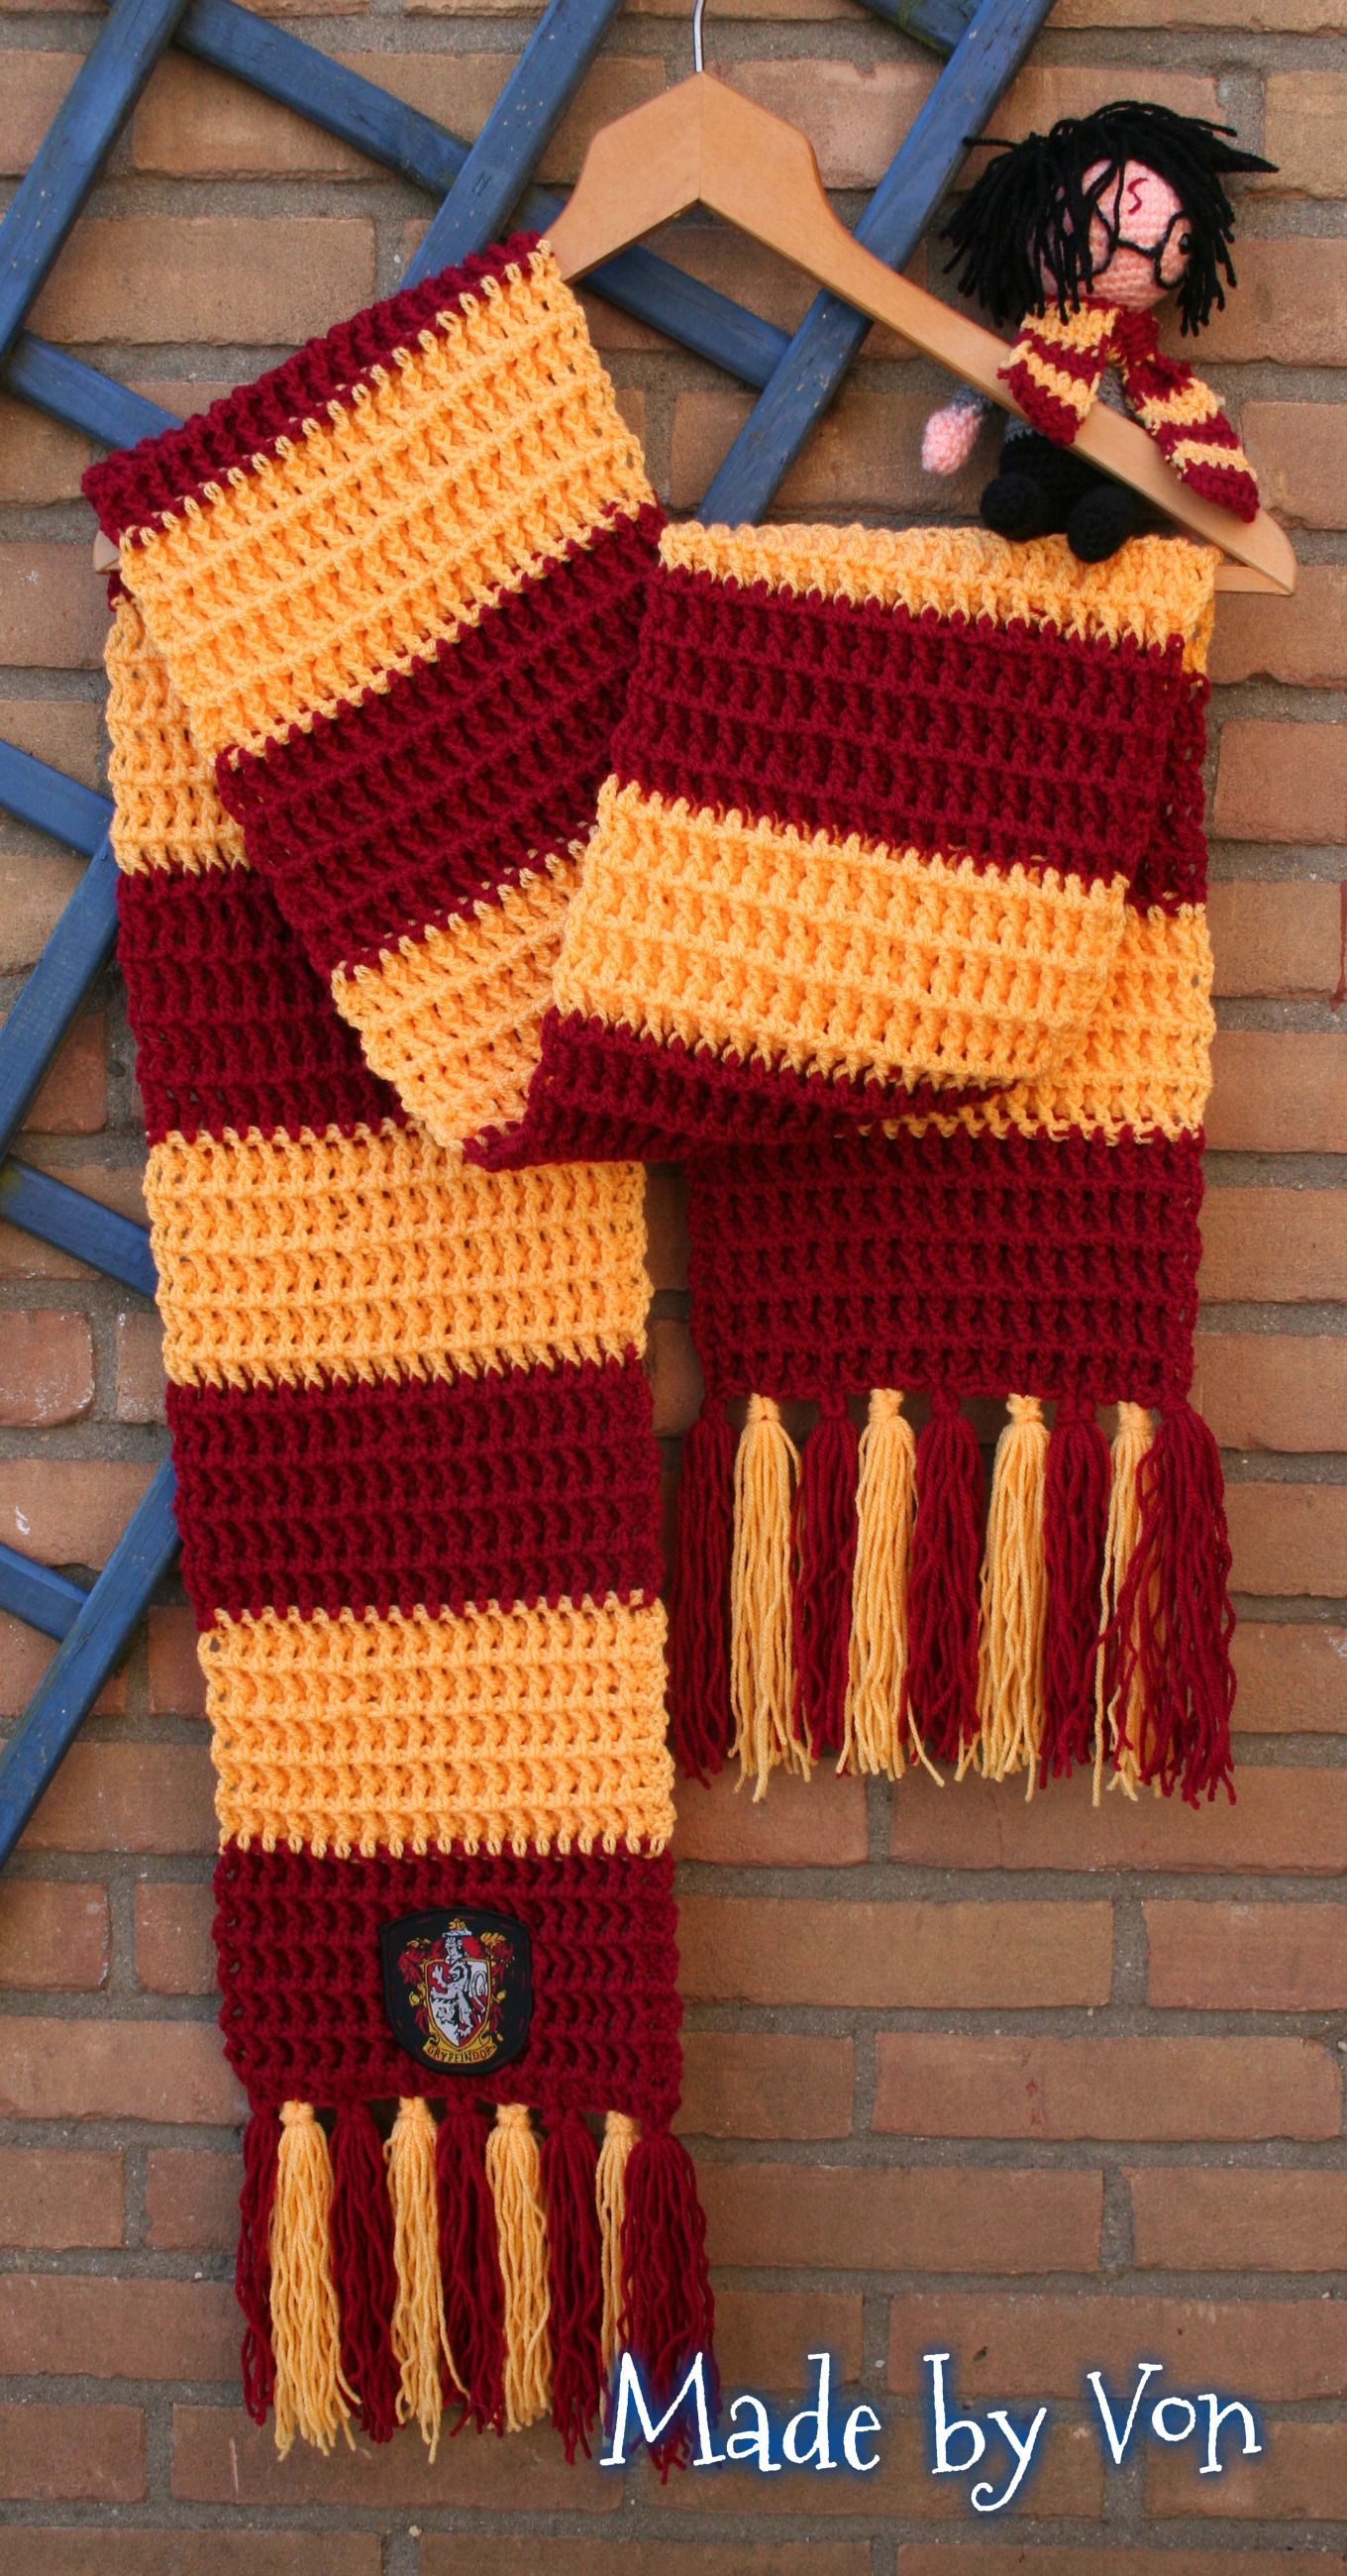 Crochet Gryffindor scarf . | Made by Von | Pinterest | Crochet ...